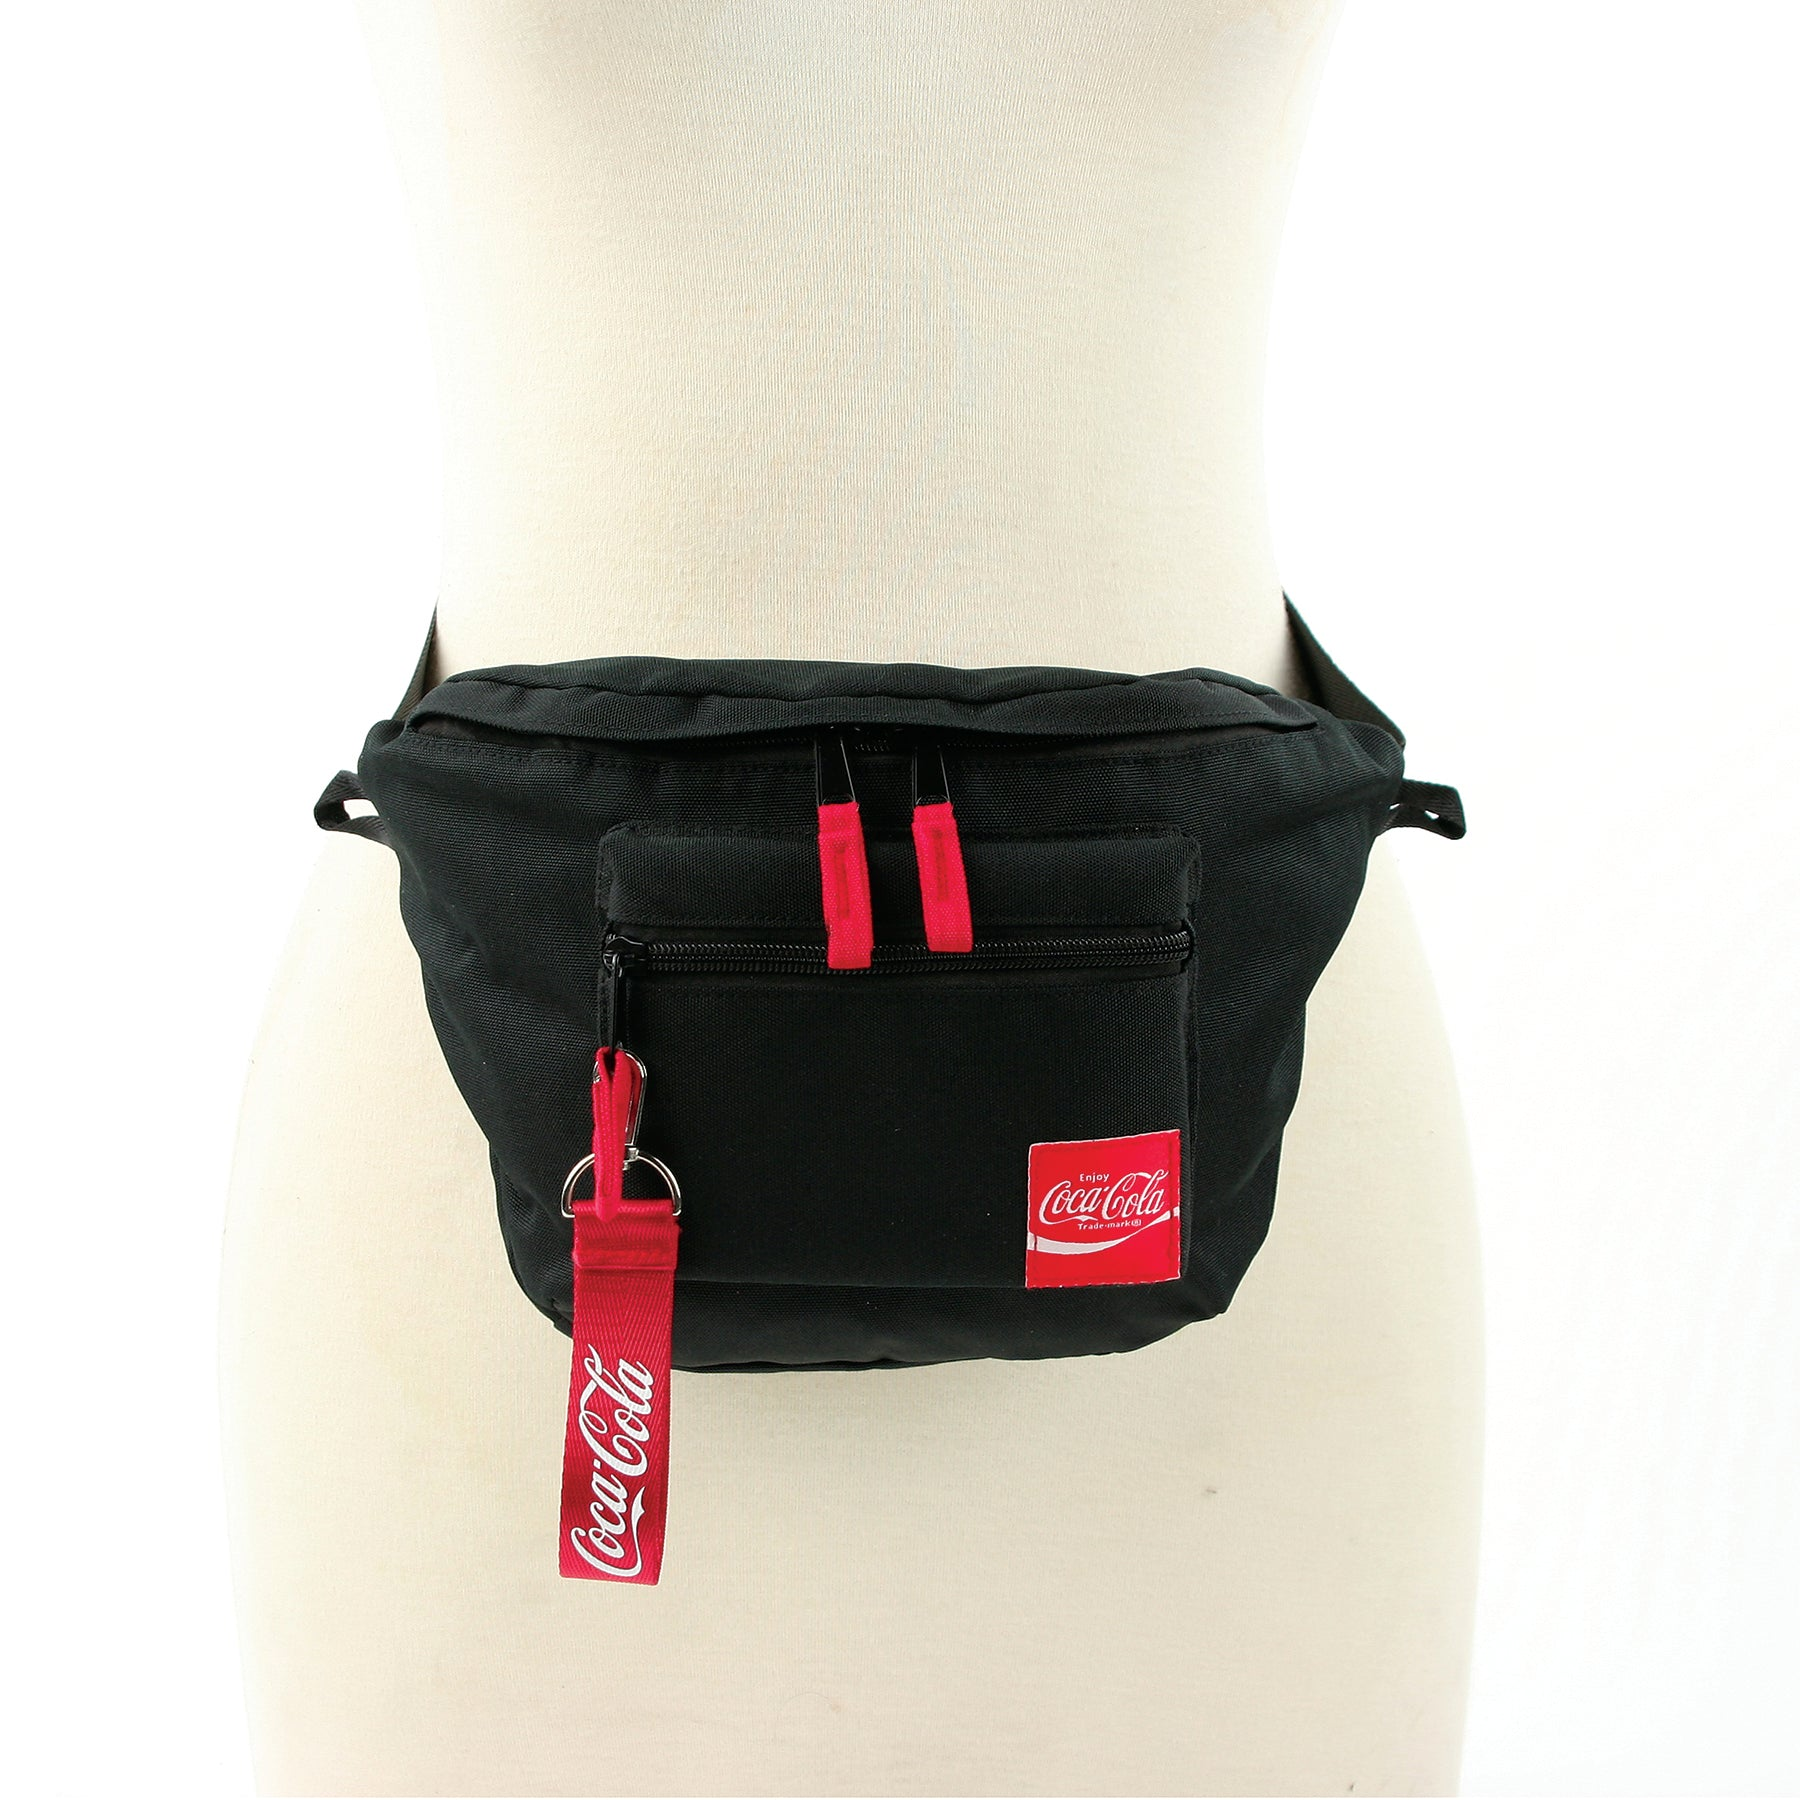 Coca-cola fanny pack frontal view